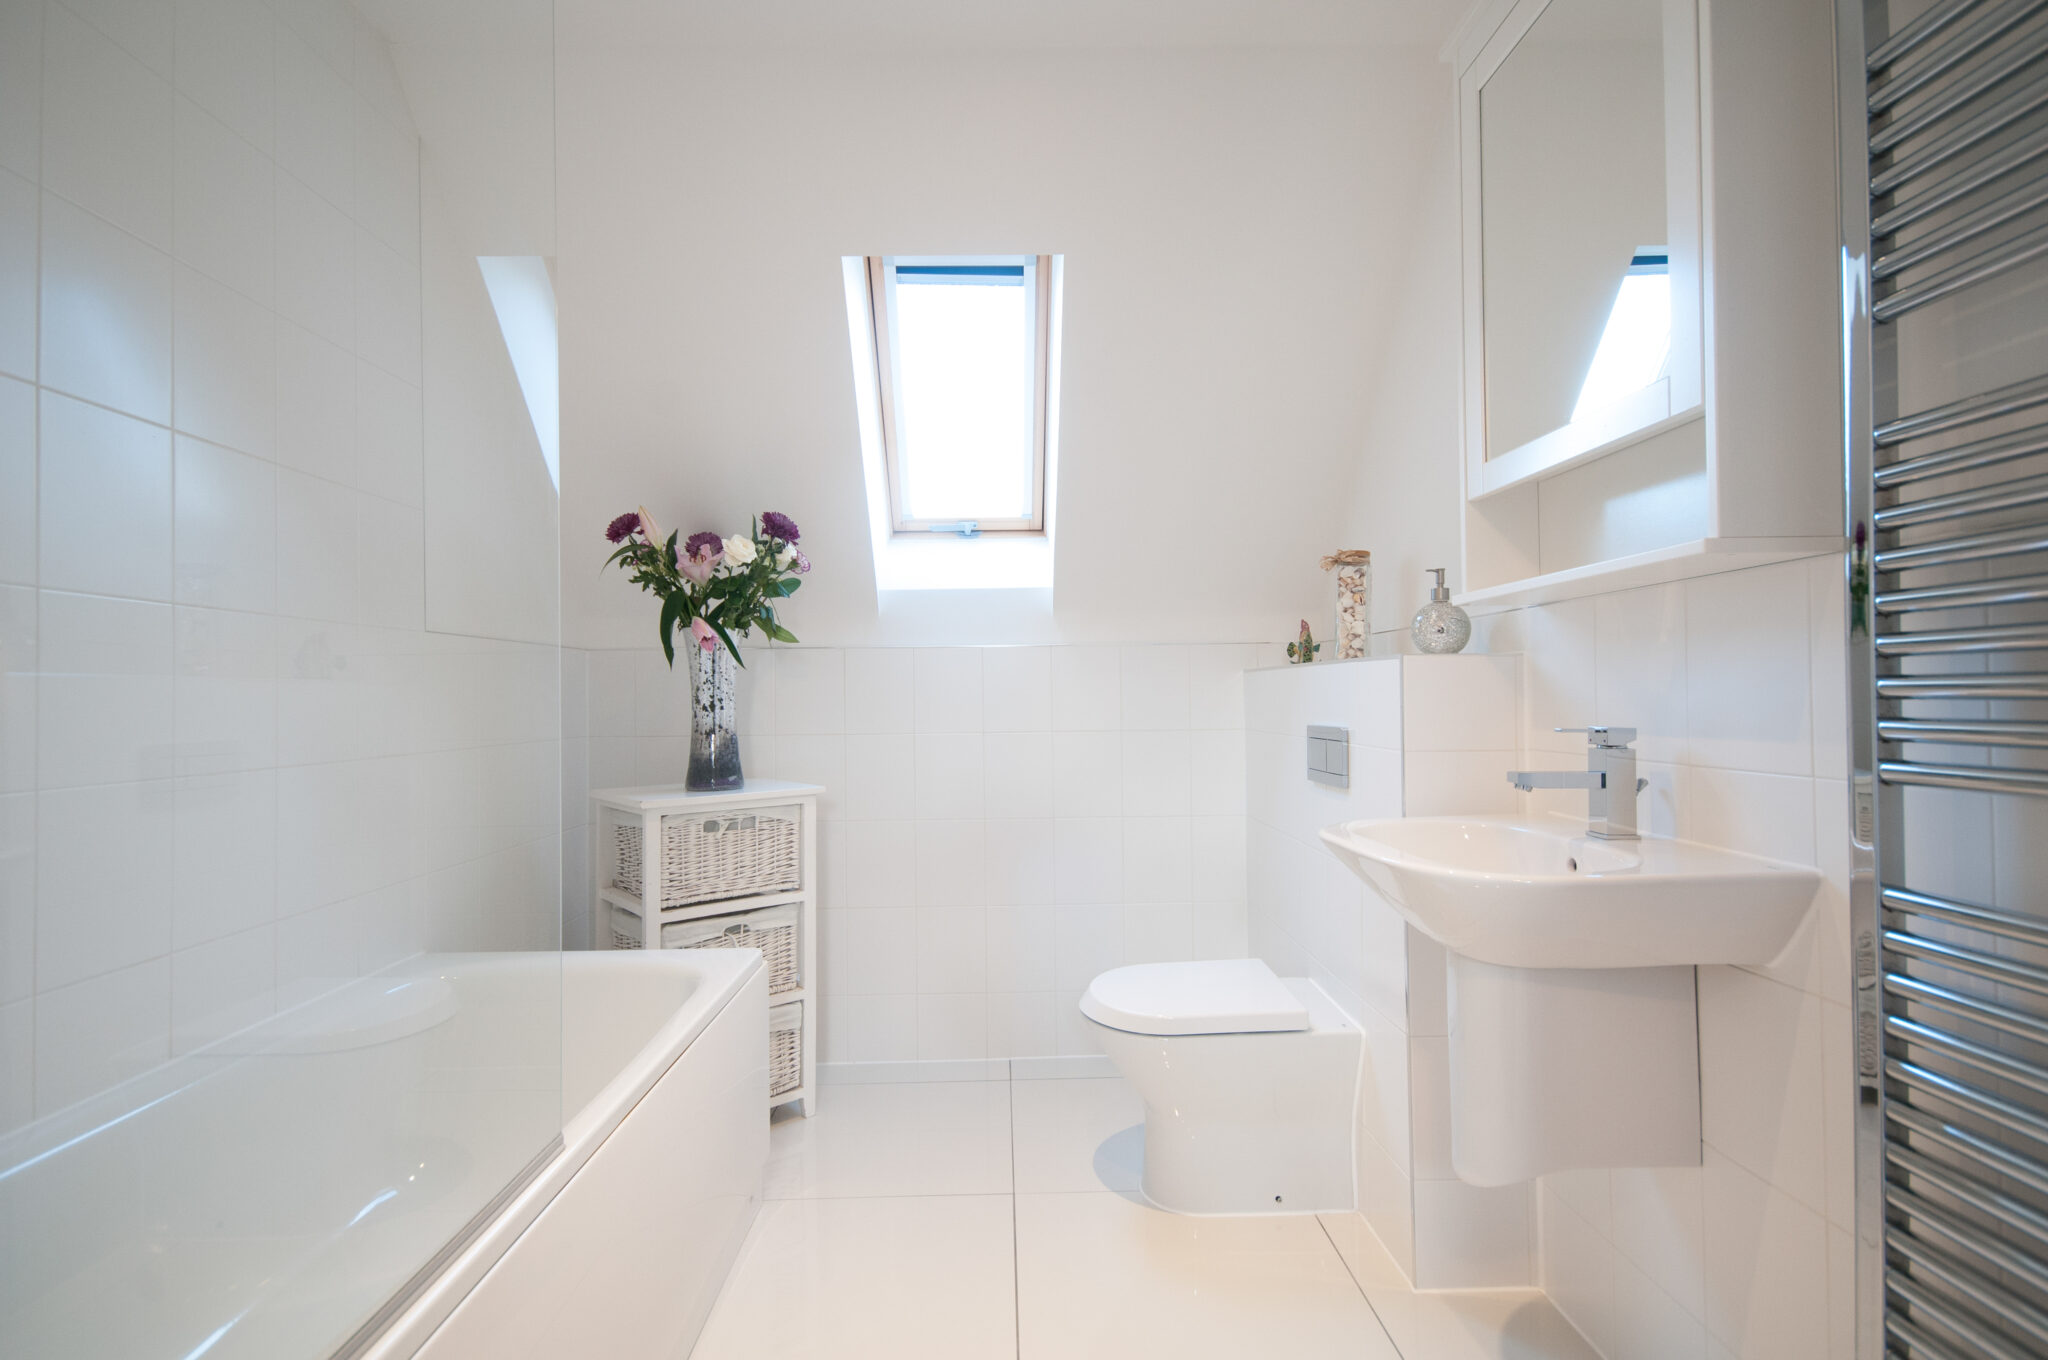 A general interior view of within a home affordable bathroom décor